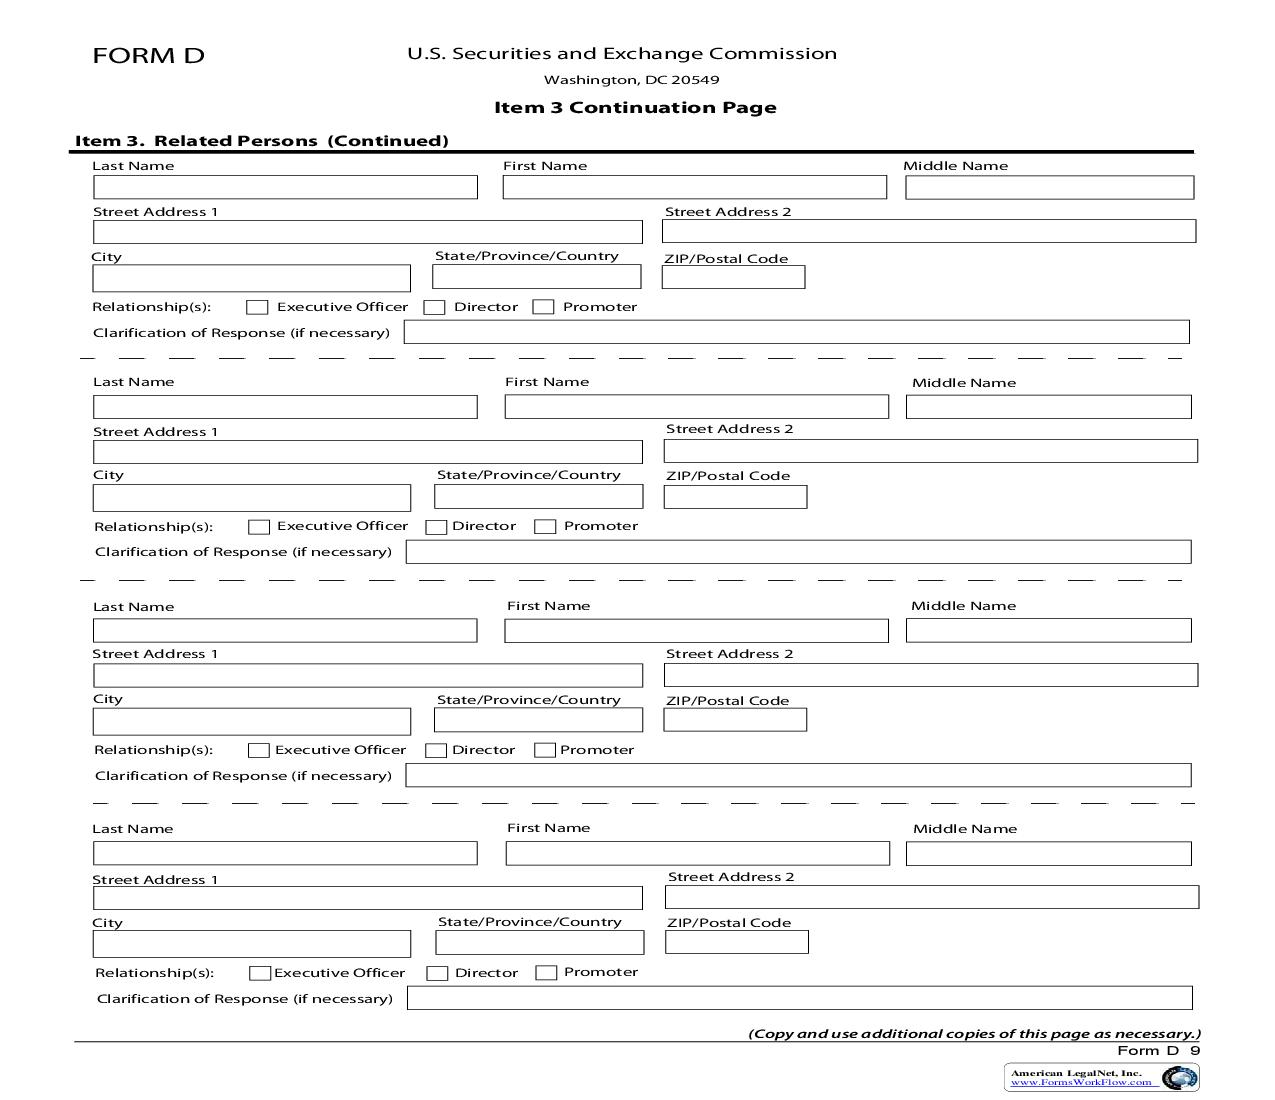 Form D Item 3 Continuation Page Related Persons (Continued) {D}   Pdf Fpdf Doc Docx   Official Federal Forms